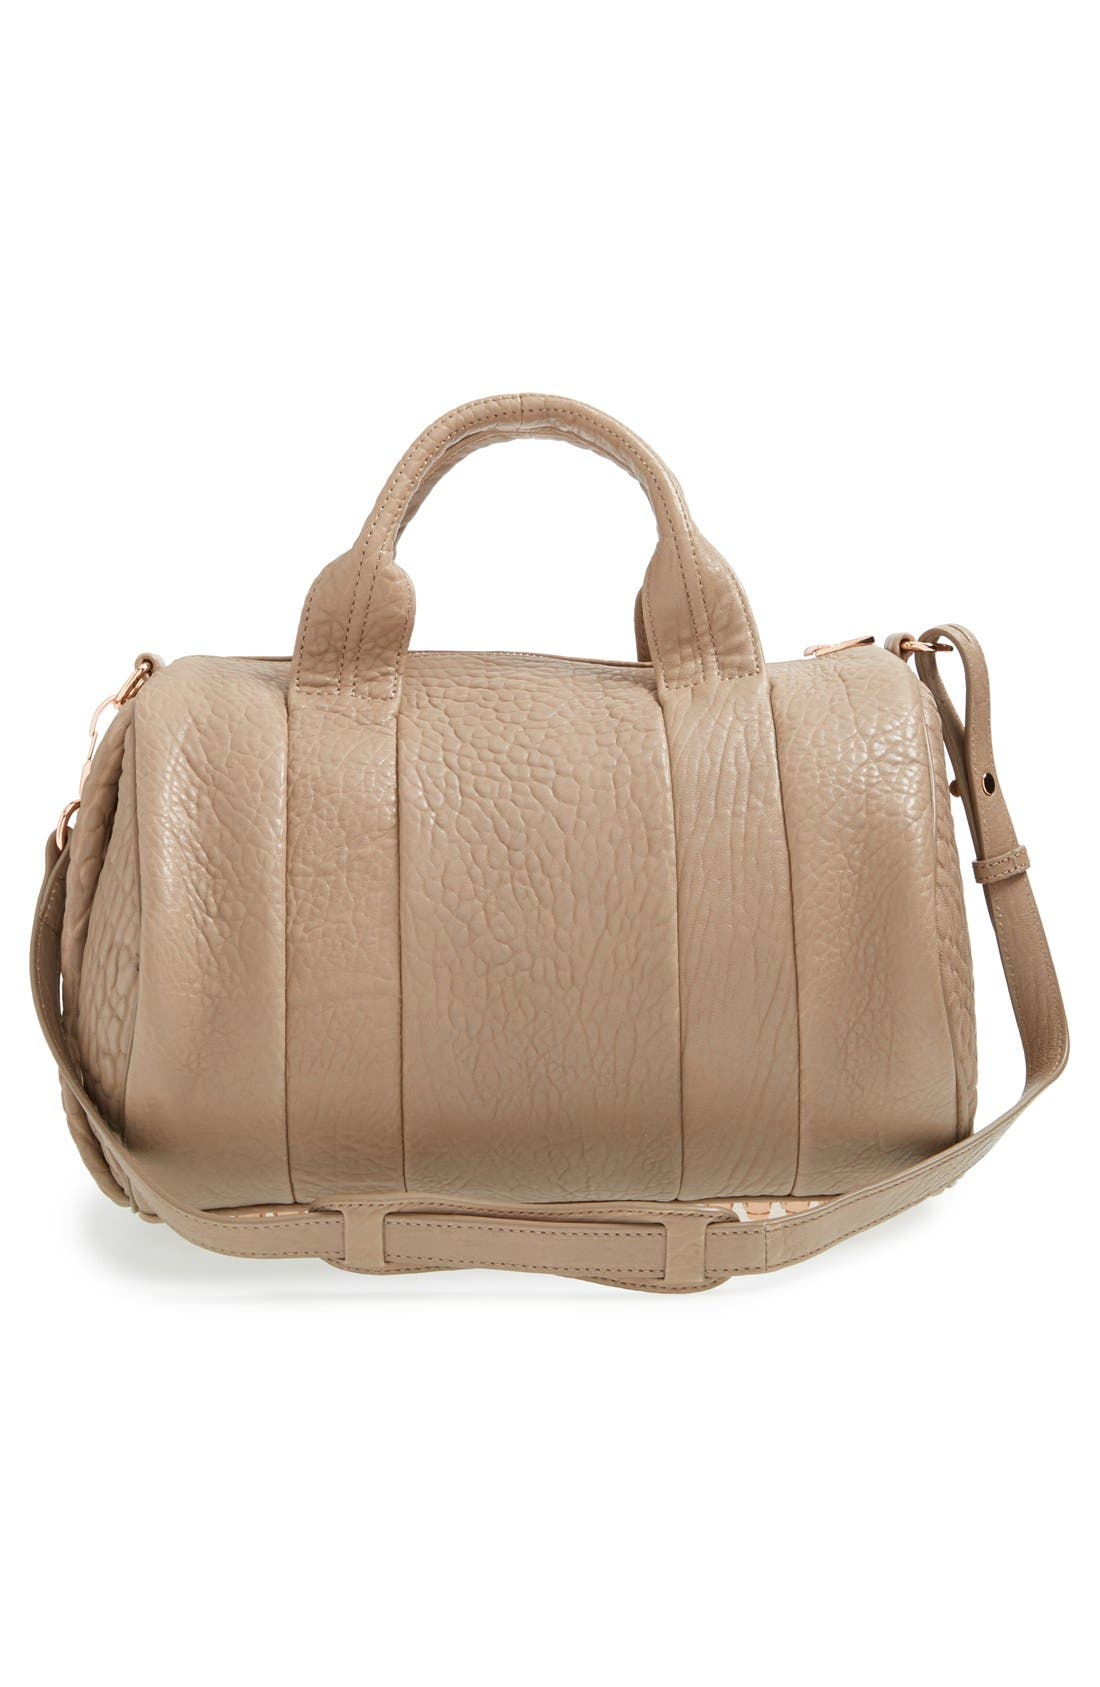 ALEXANDER WANG, 'Rocco - Rose Gold' Leather Satchel, Alternate thumbnail 6, color, 250